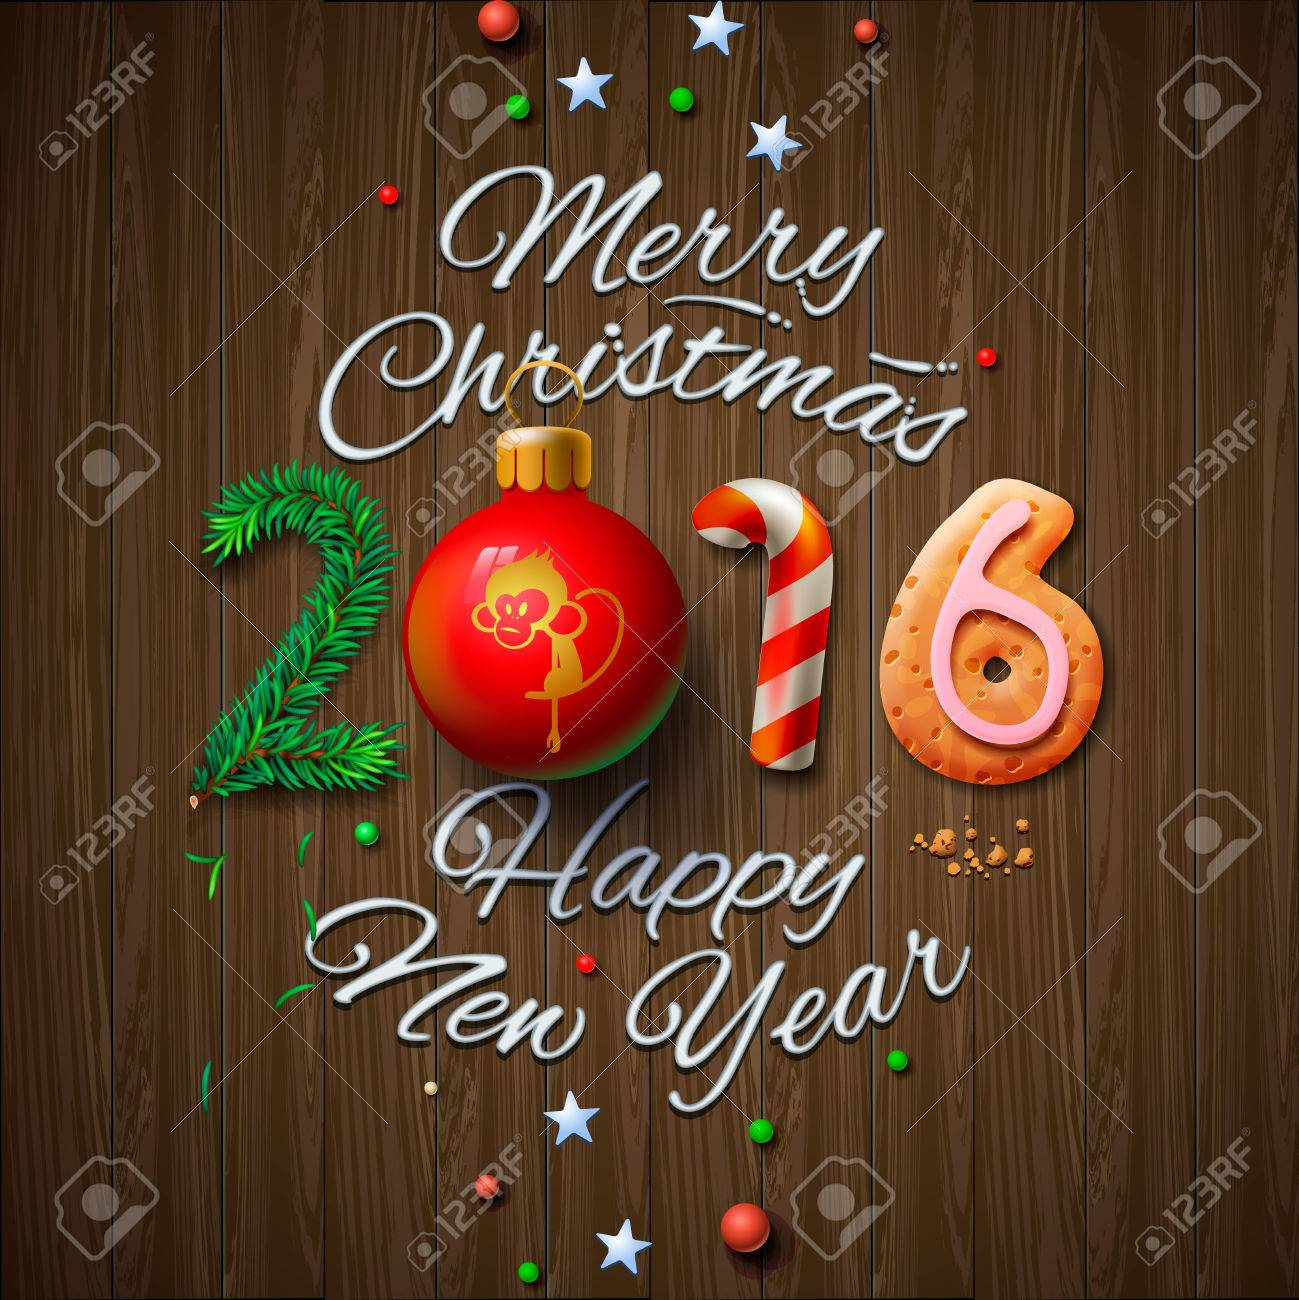 Merry Christmas and Happy New Year 2016 greeting card, vector illustration. Standard-Bild - 47864173